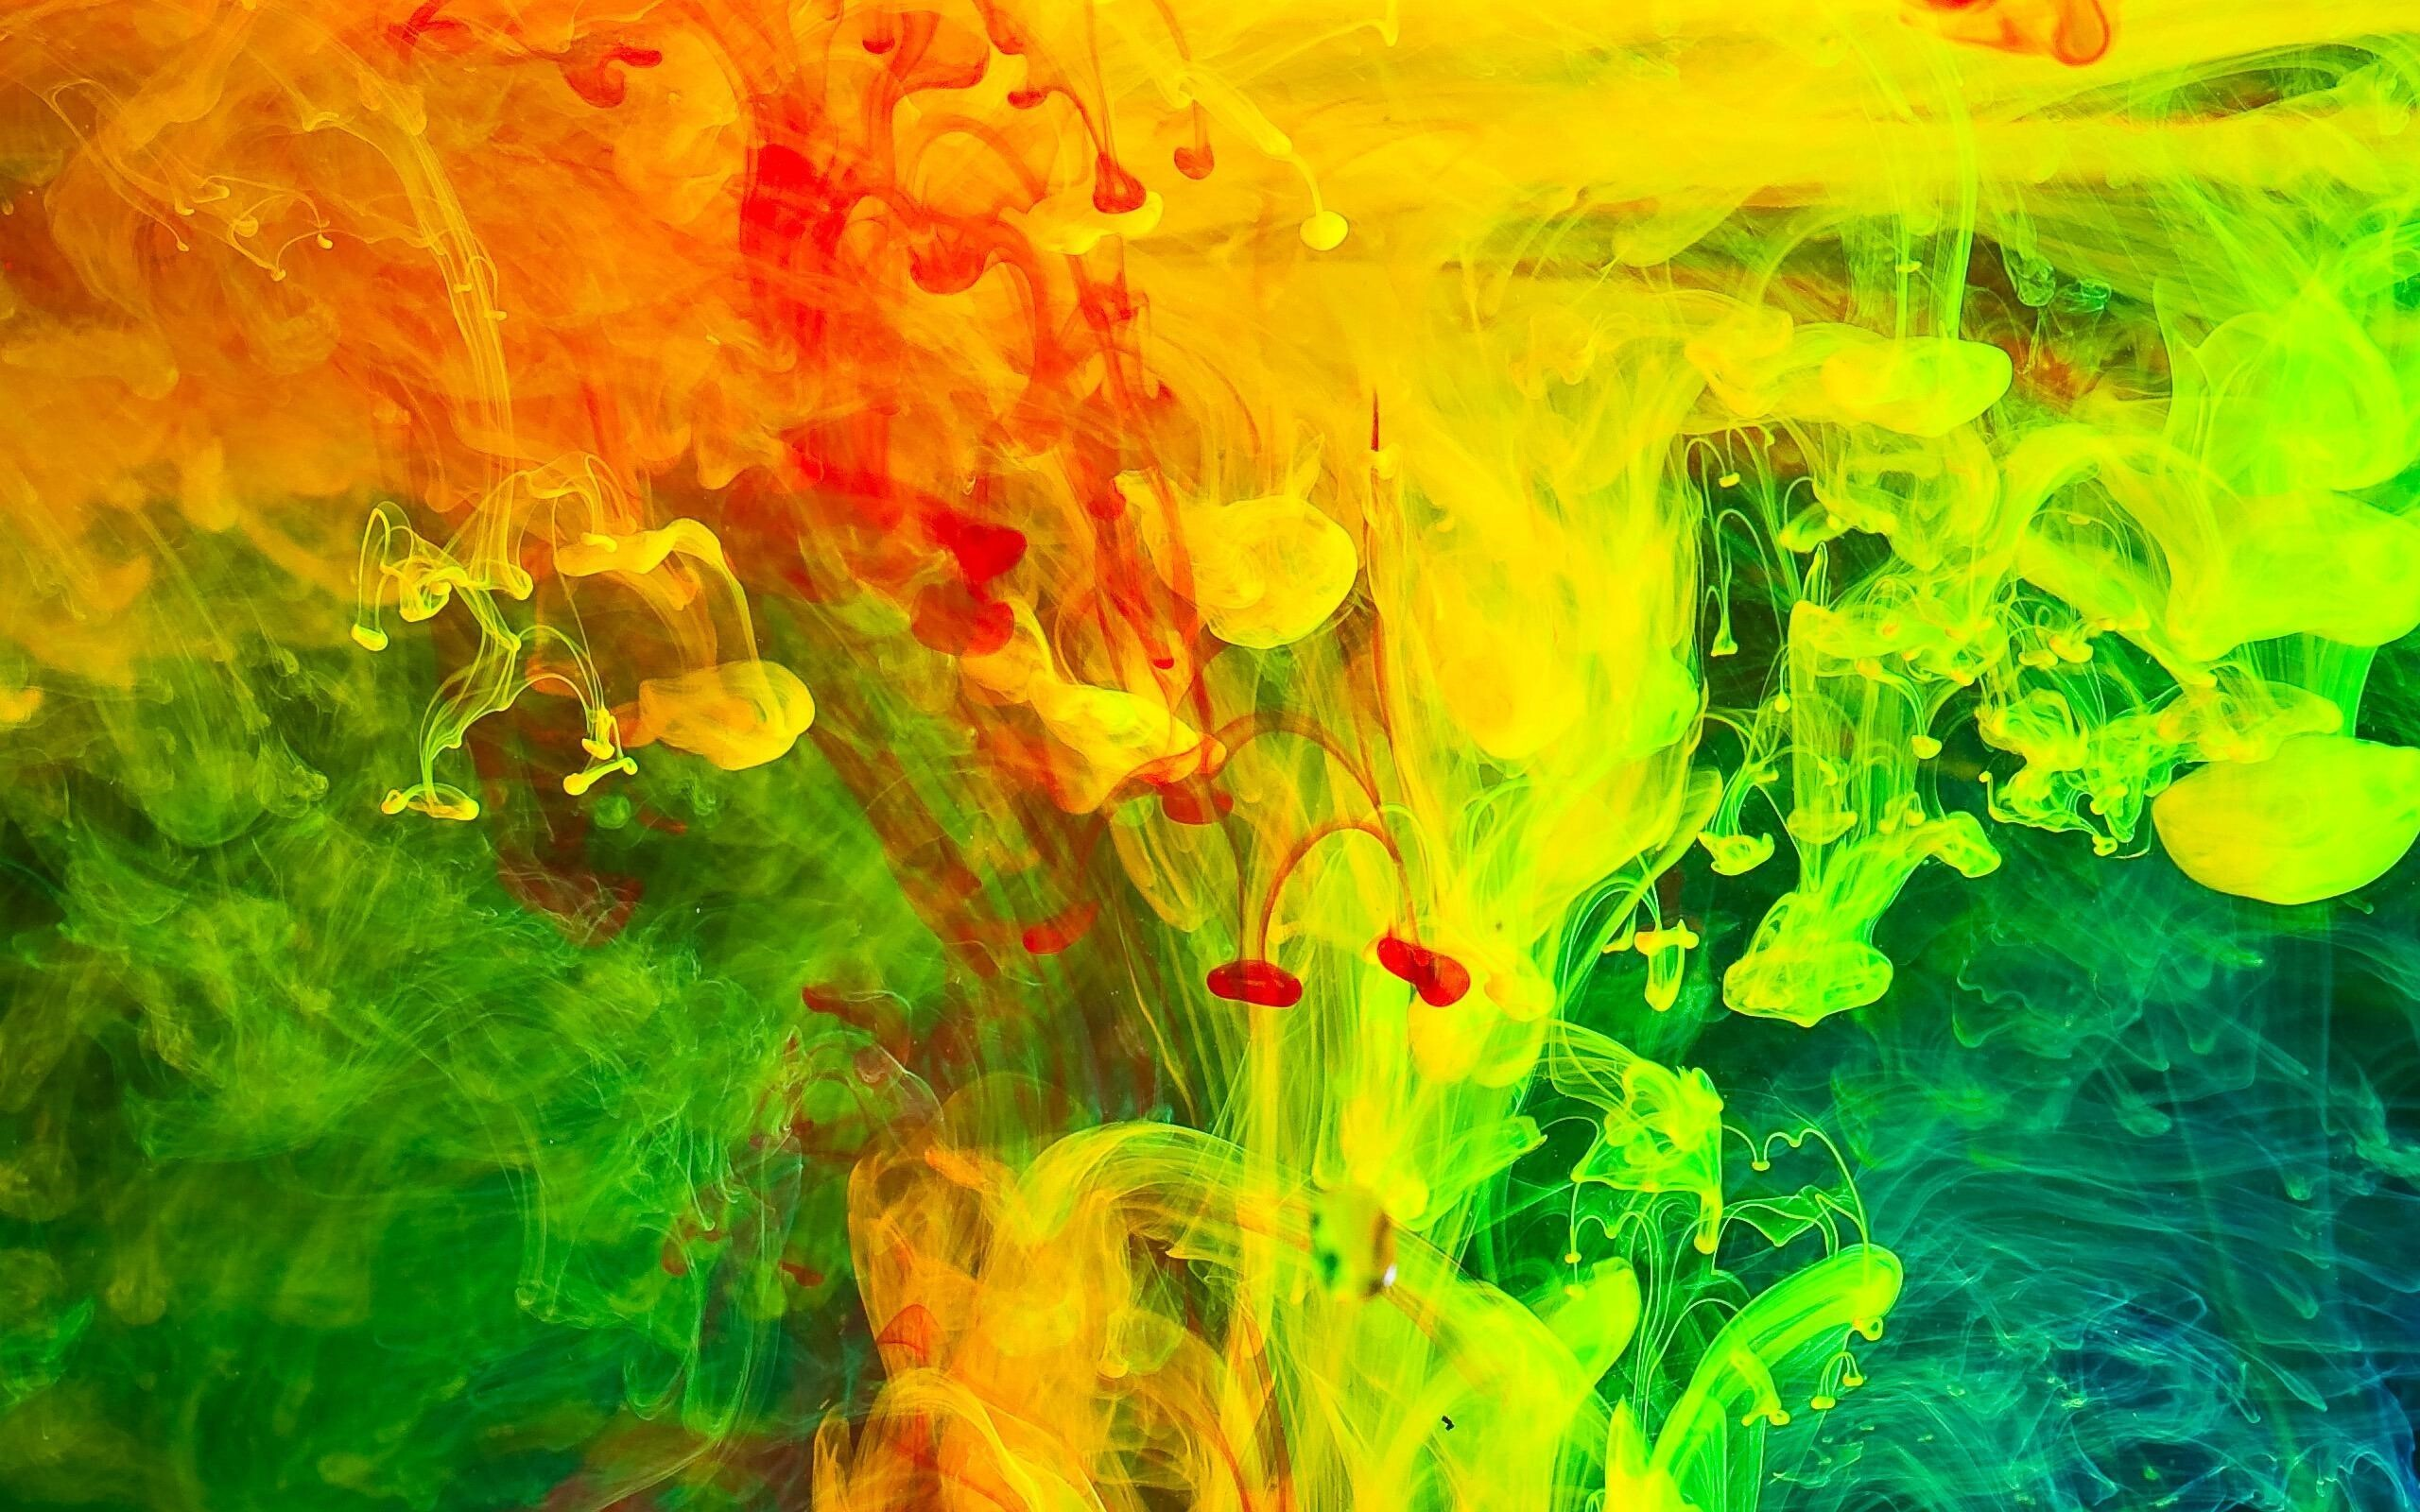 Colorful Abstract Image Wallpaper Hd Wallpapers